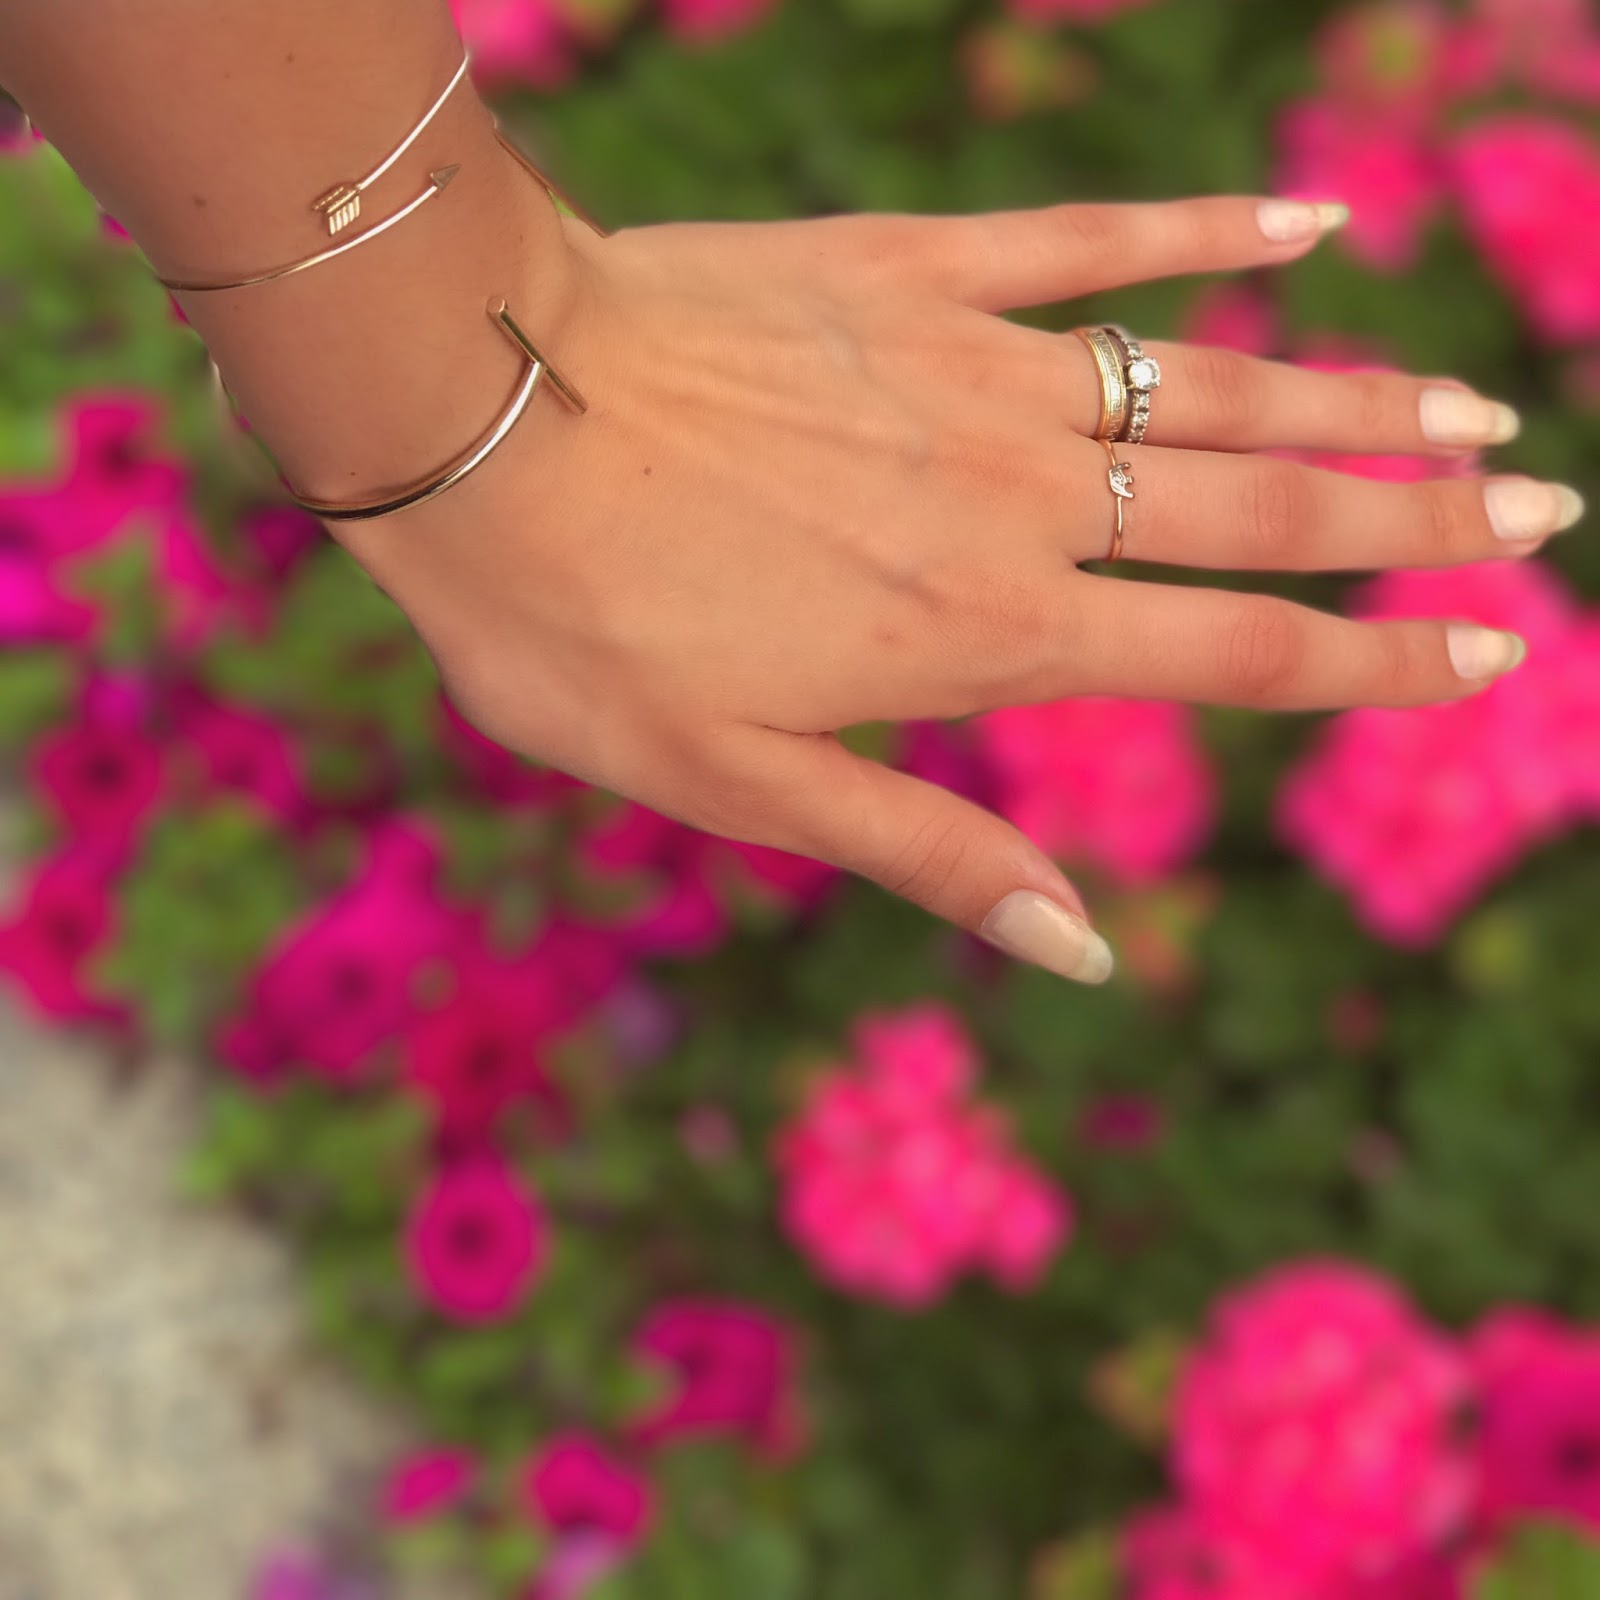 Jewelry and Pink Flowers